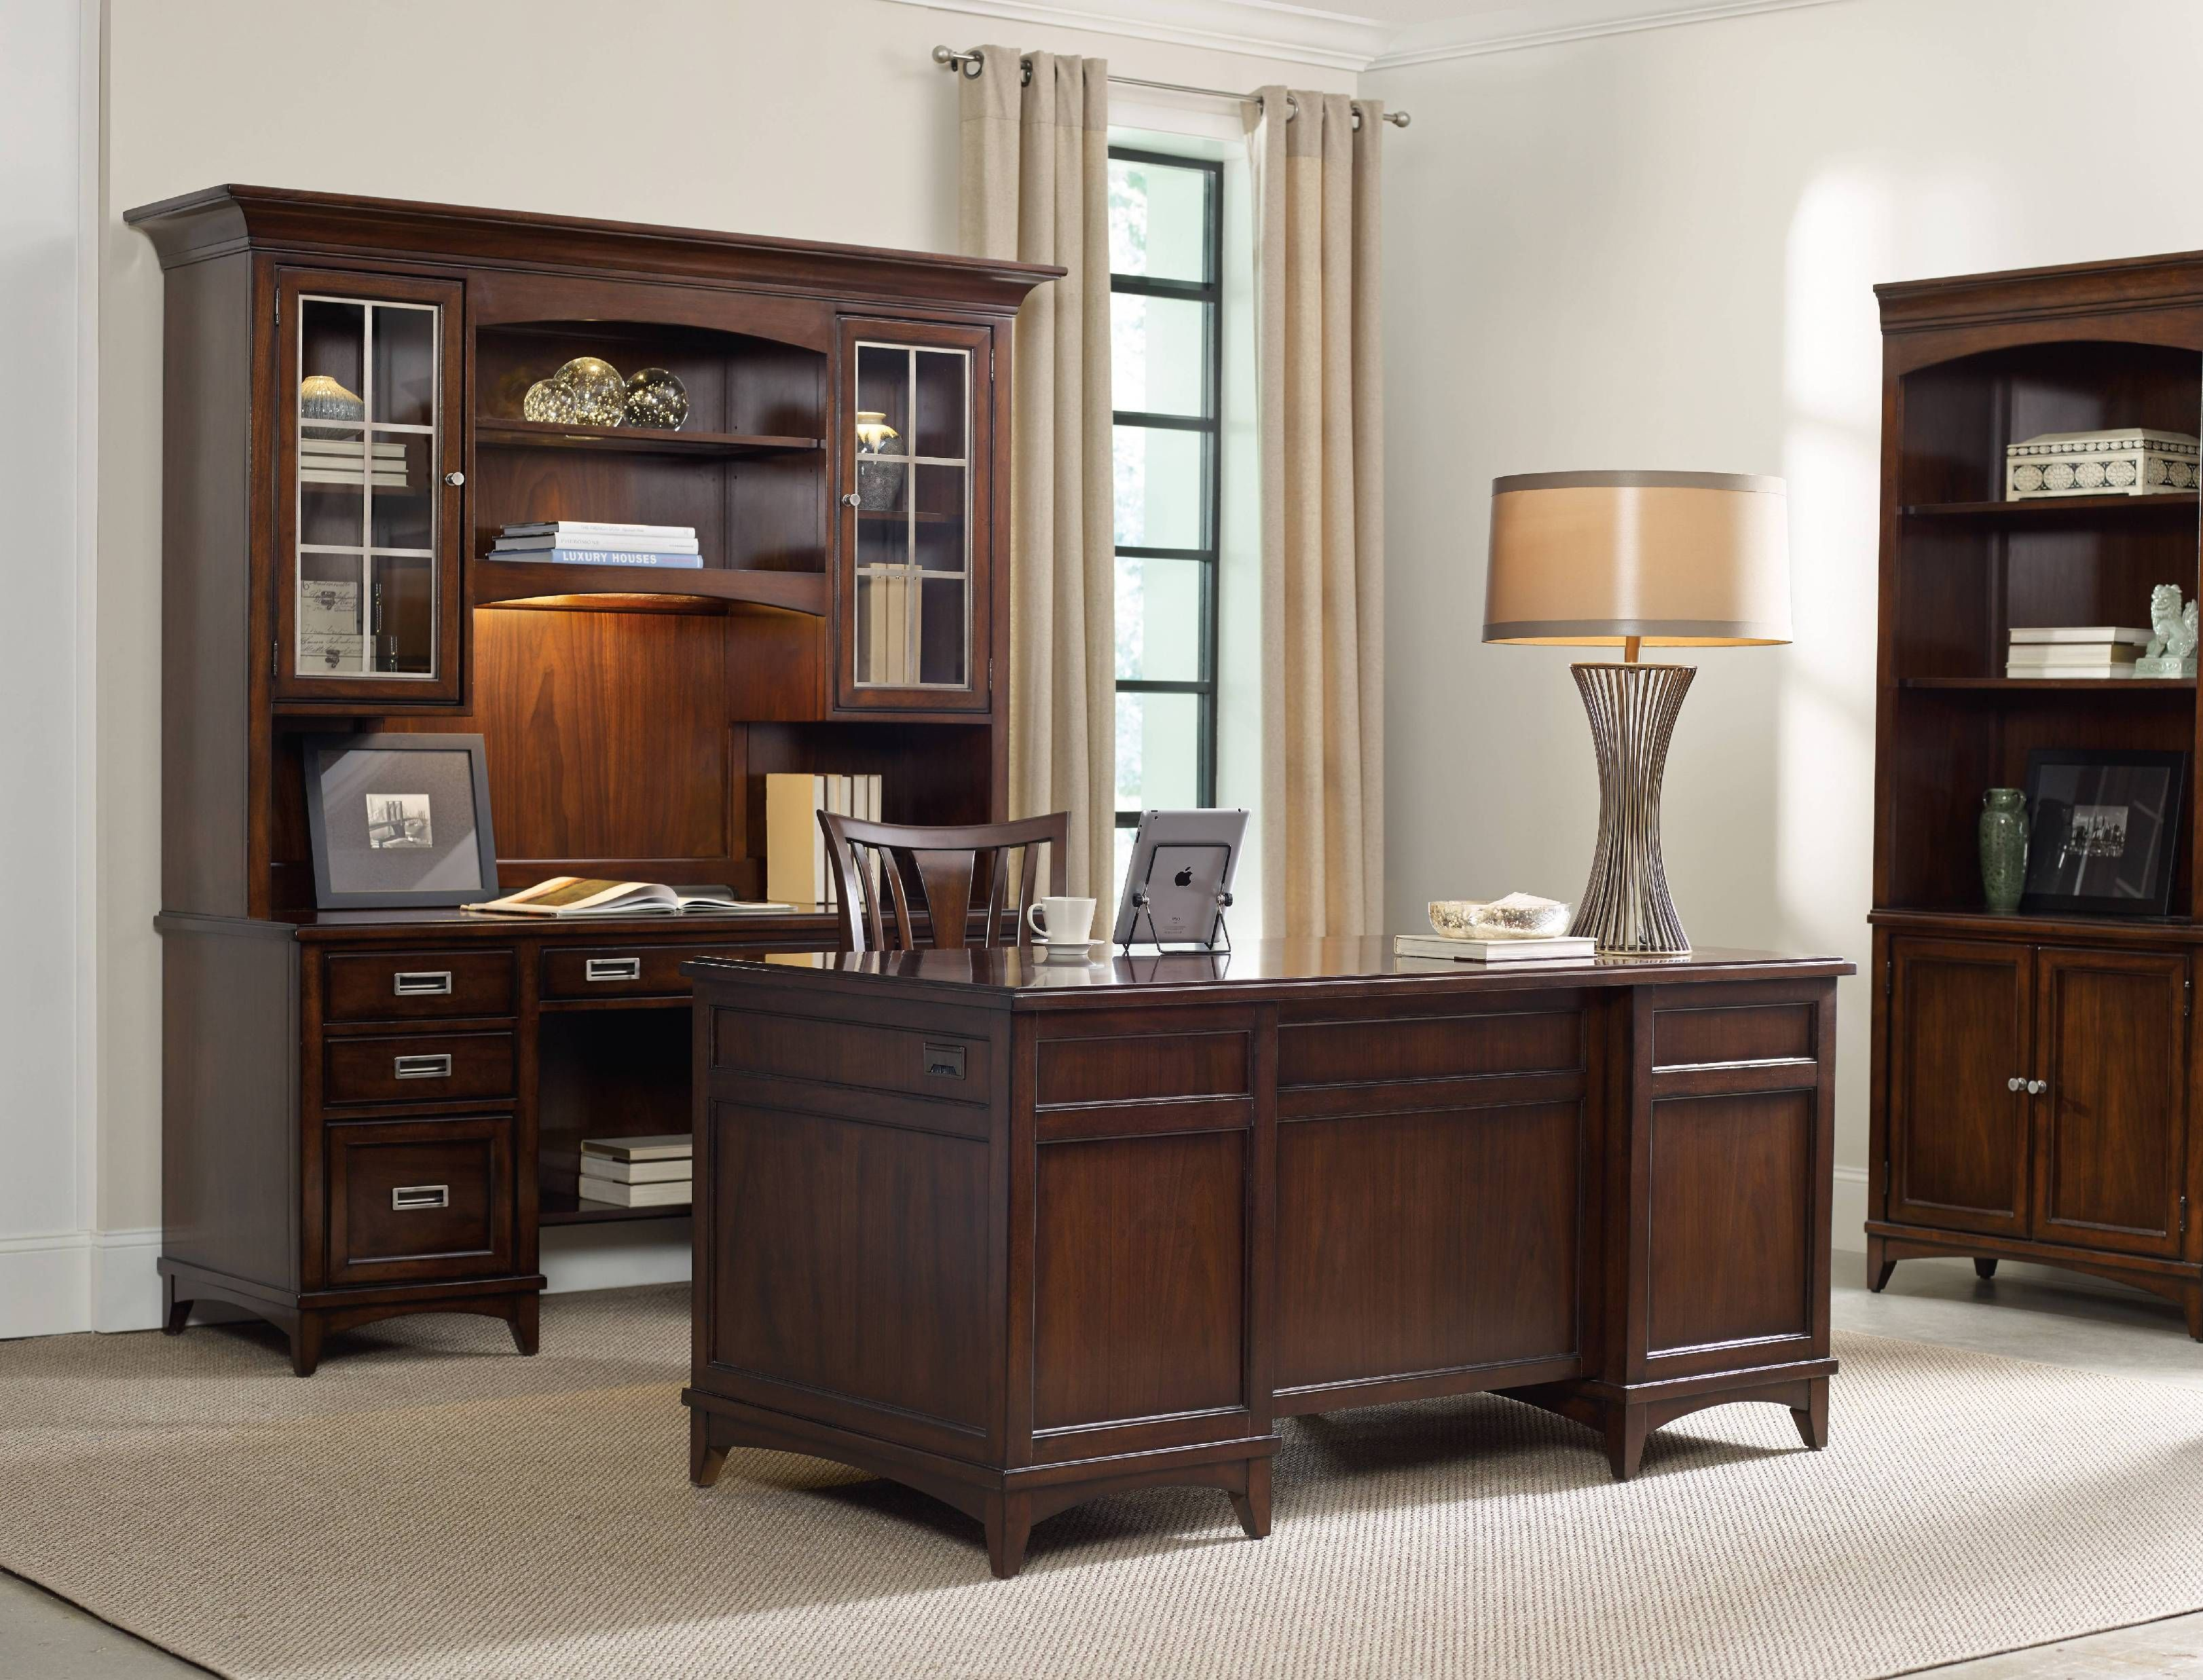 Hooker Furniture Home Office Captivating Hooker Furniture Home Office Latitude Executive Desk 516710562 . Decorating Design